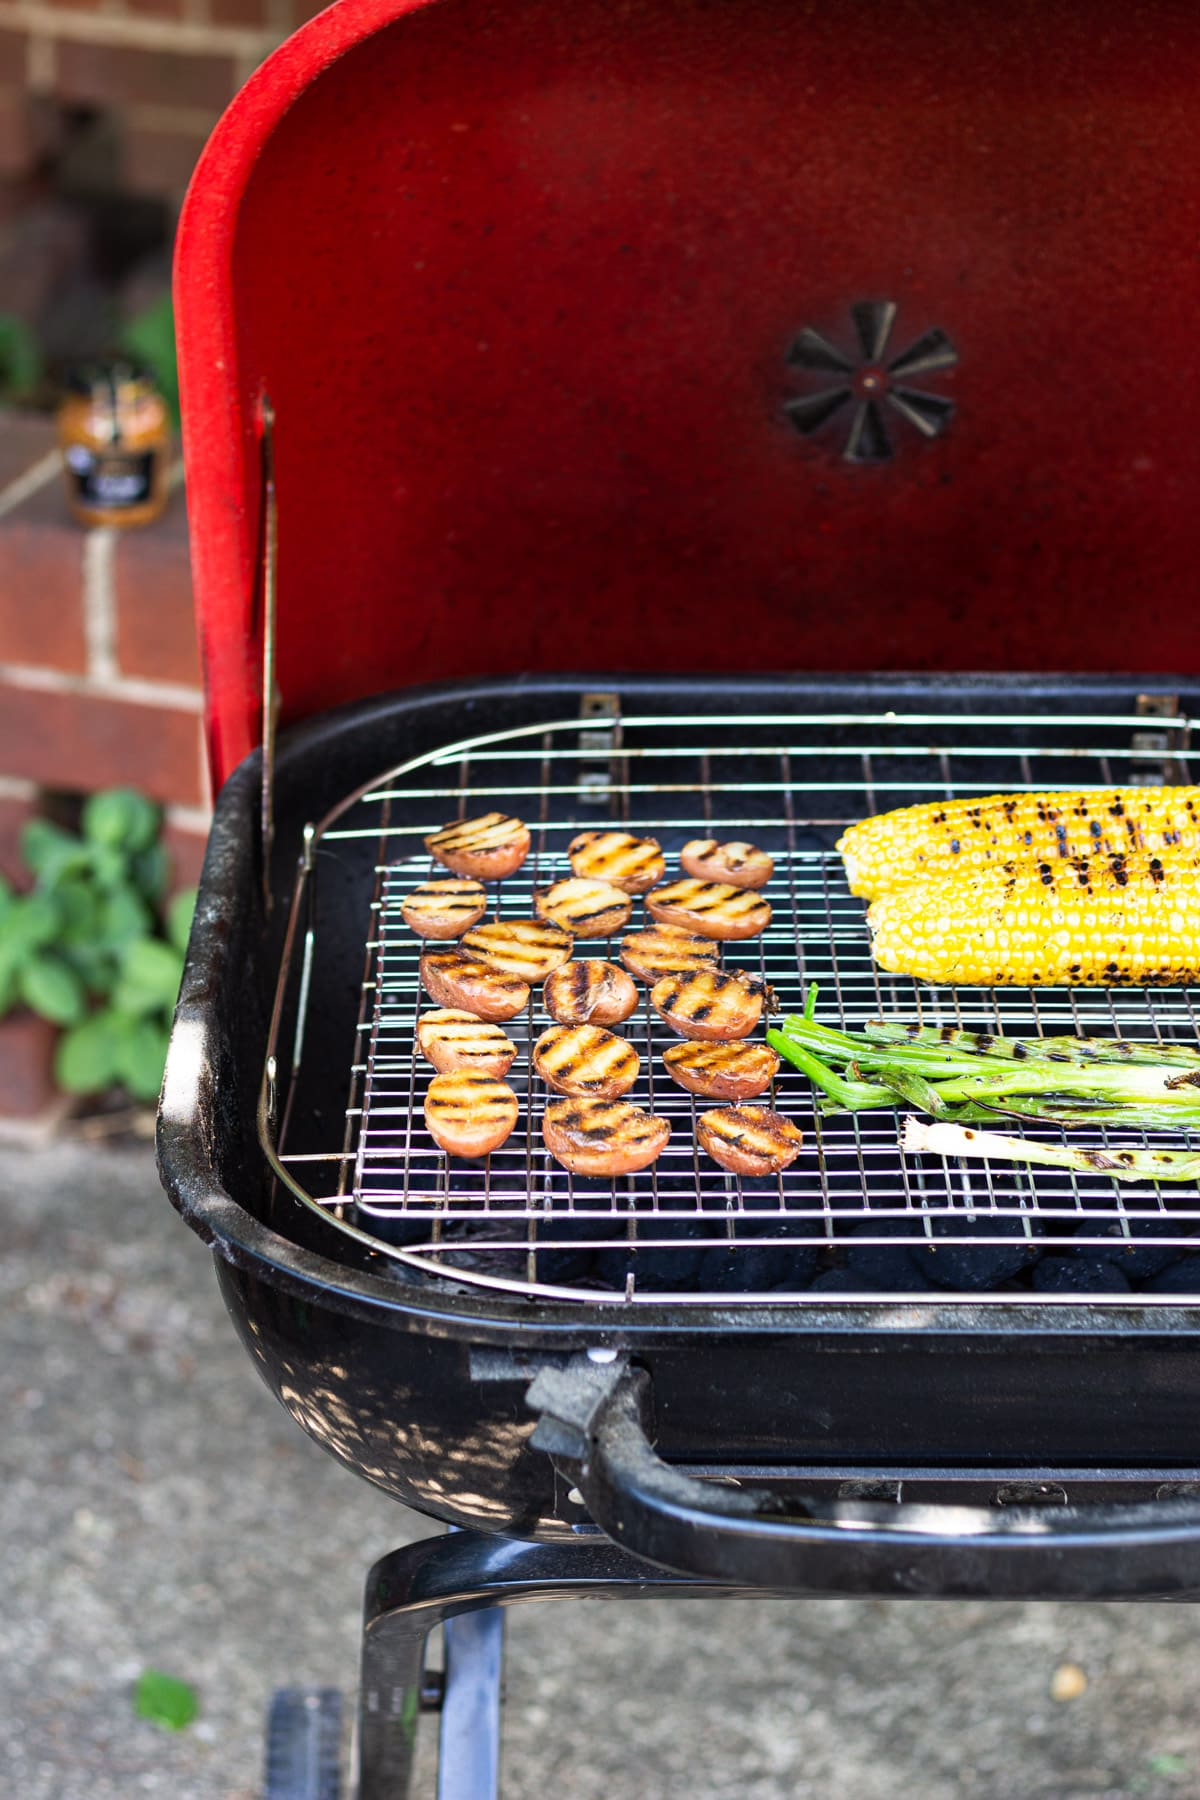 Red potatoes, corn on the cob and scallions on an outdoor grill.